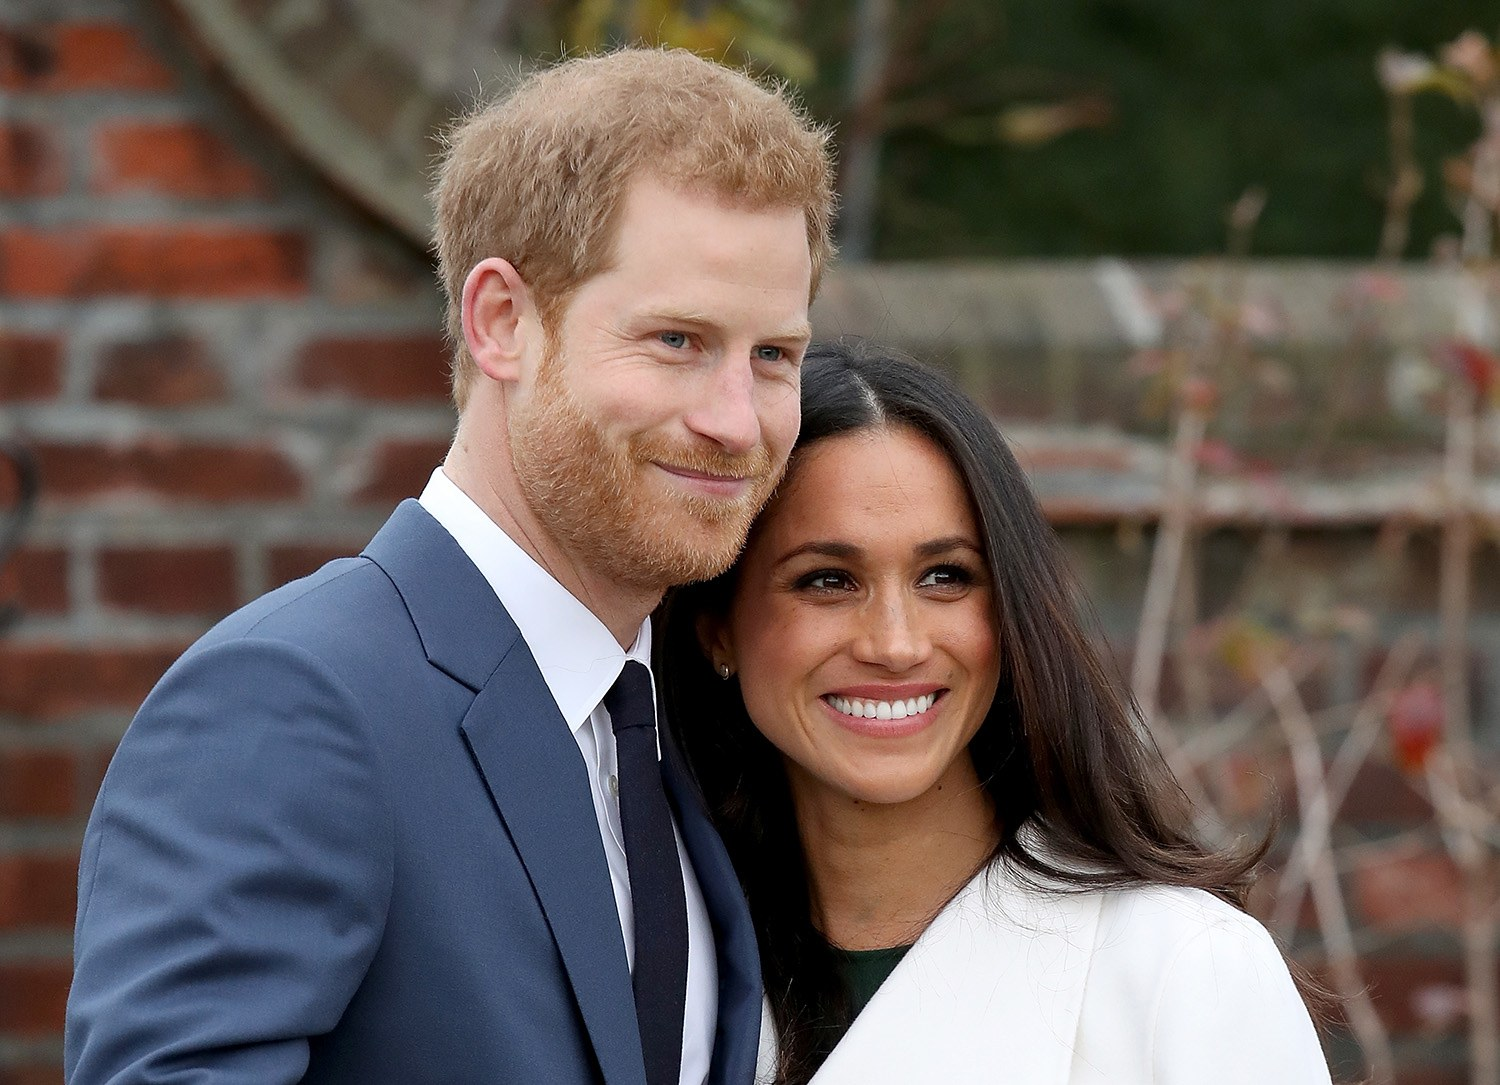 the Royal Wedding featured